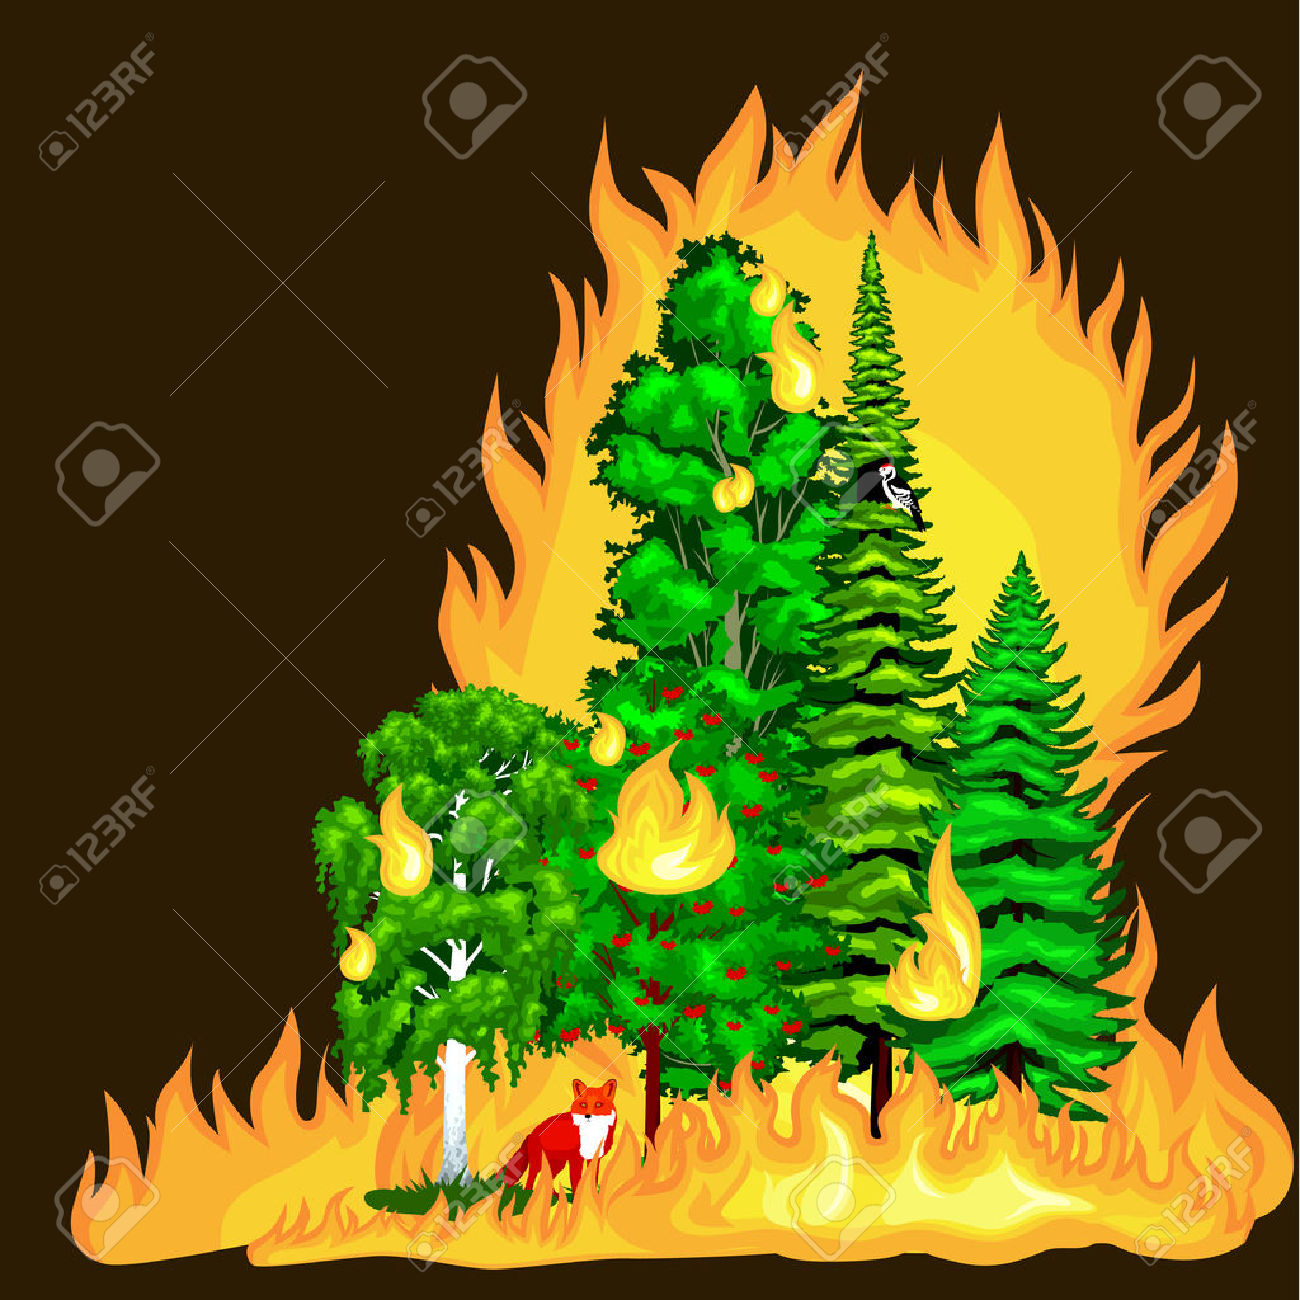 Bushfire clipart #4, Download drawings